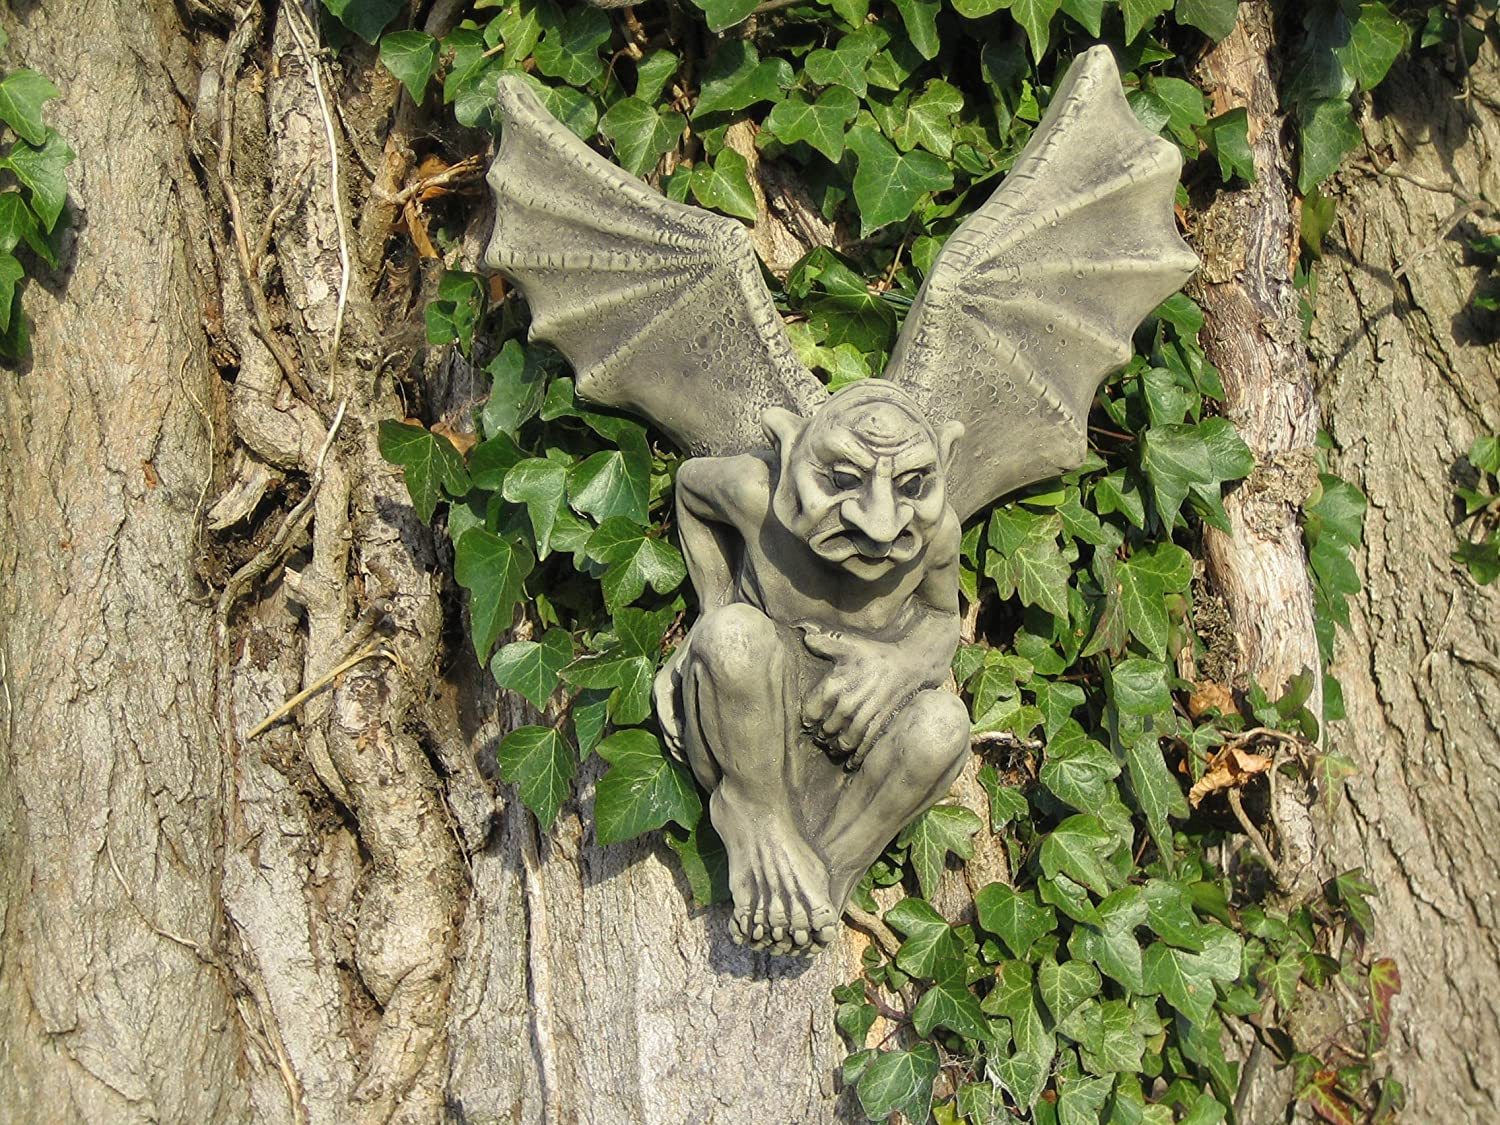 Charming Batman Gargoyle Stone Garden Ornament Wall Plaque: Amazon.co.uk: Garden U0026  Outdoors